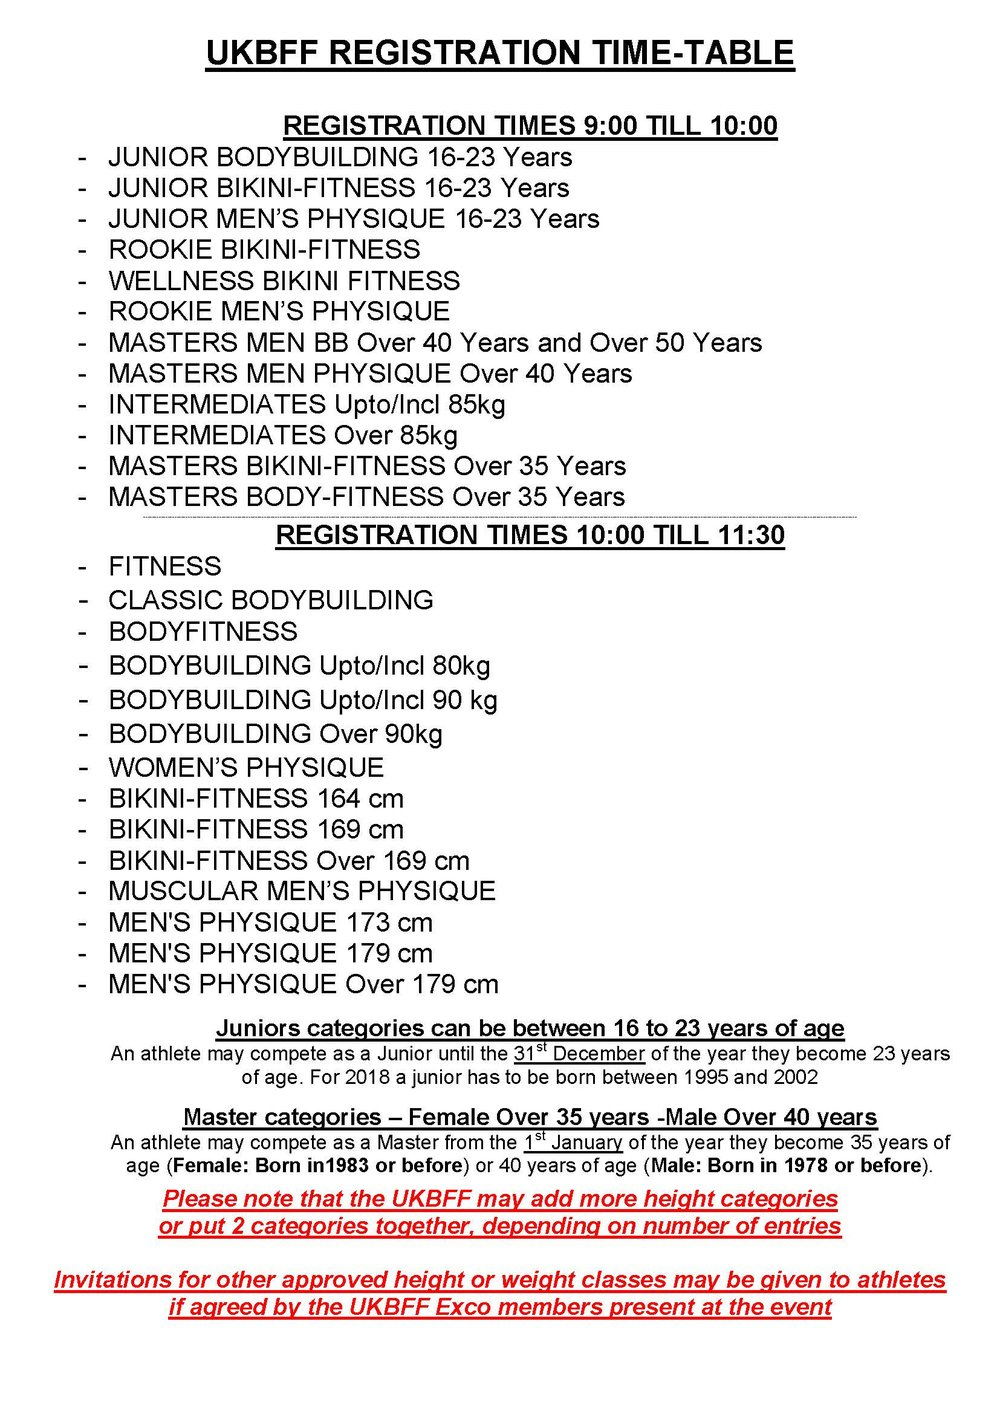 2018 British Qualifiers Registration Times.jpg